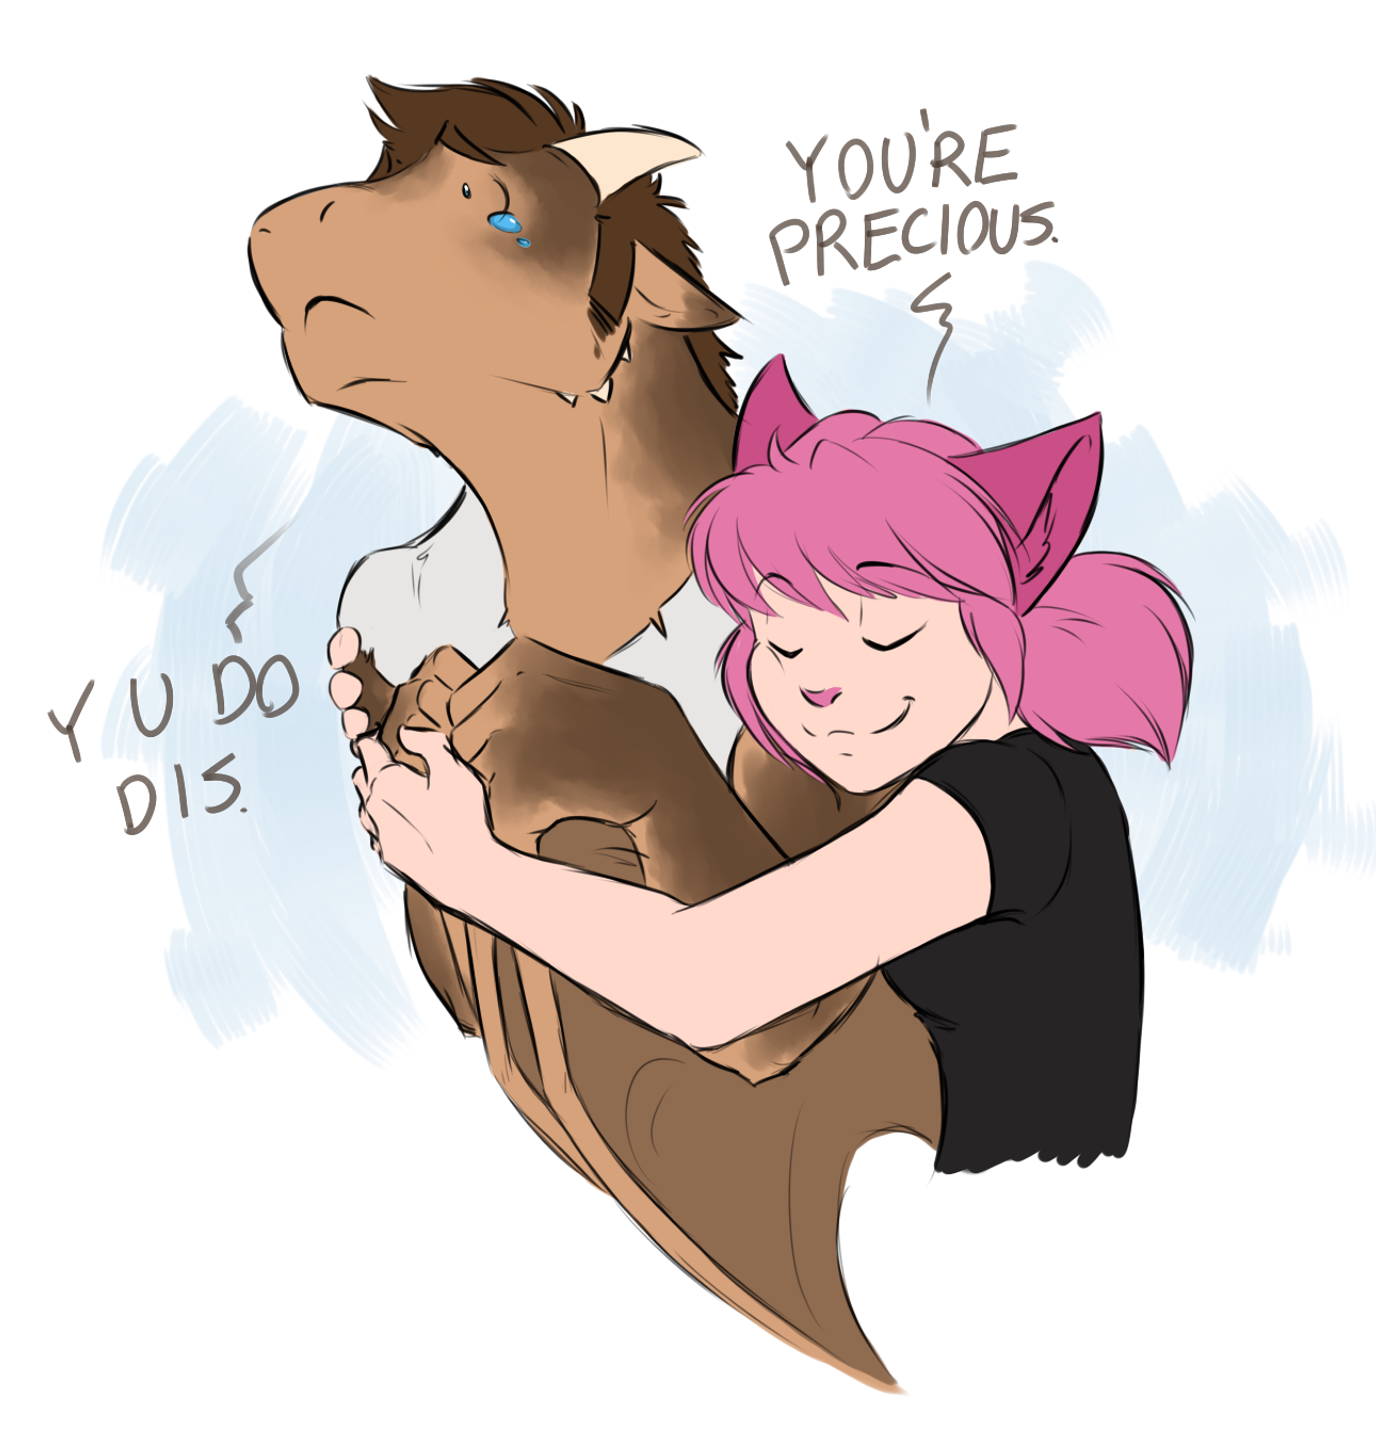 Identity Crisis and Cuddles by Evion